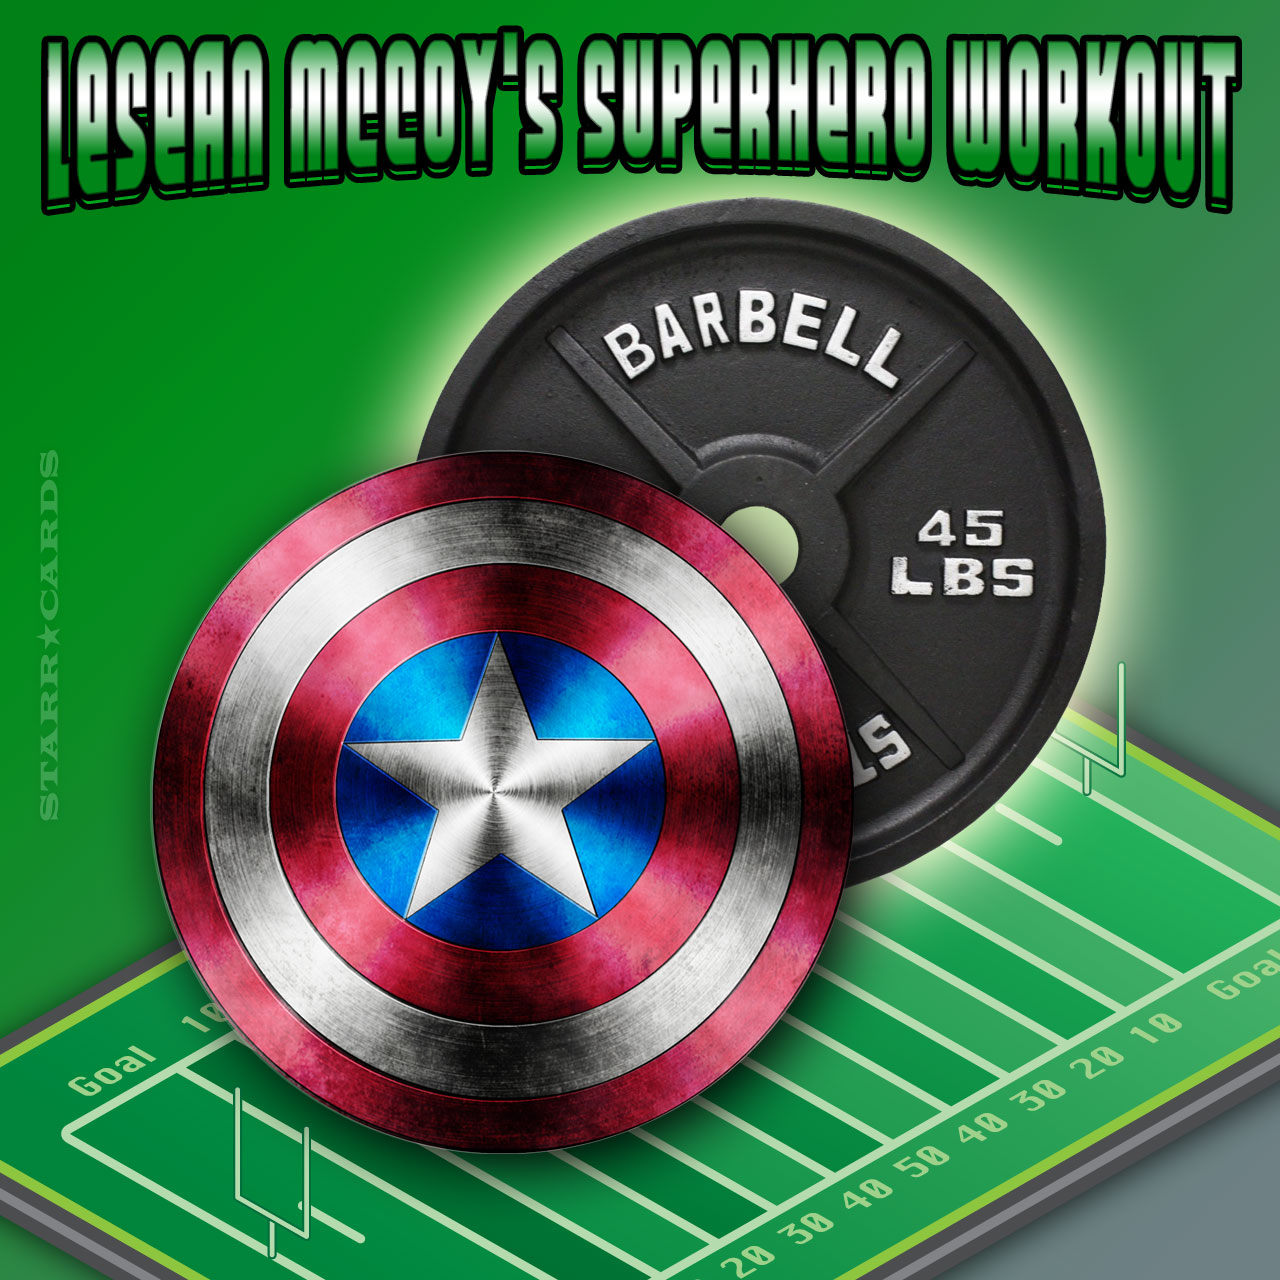 LeSean McCoy's superhero workout